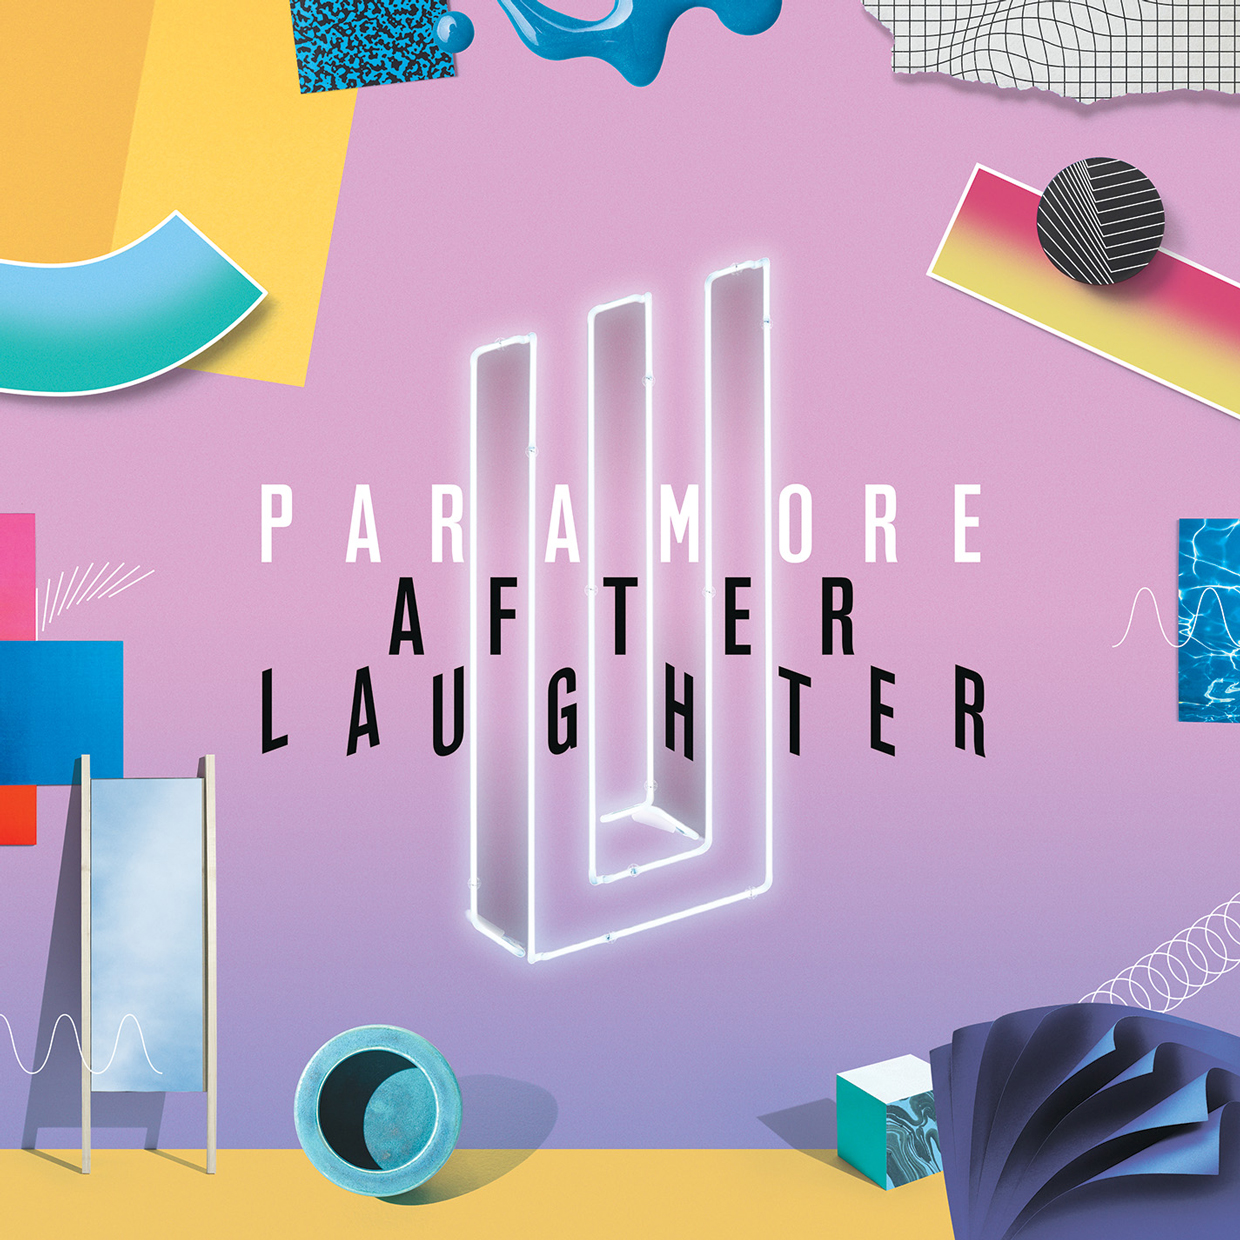 Google themes paramore - Paramore To Release Fifth Studio Album On May 12 Musicrow Nashville S Music Industry Publication News Songs From Music City